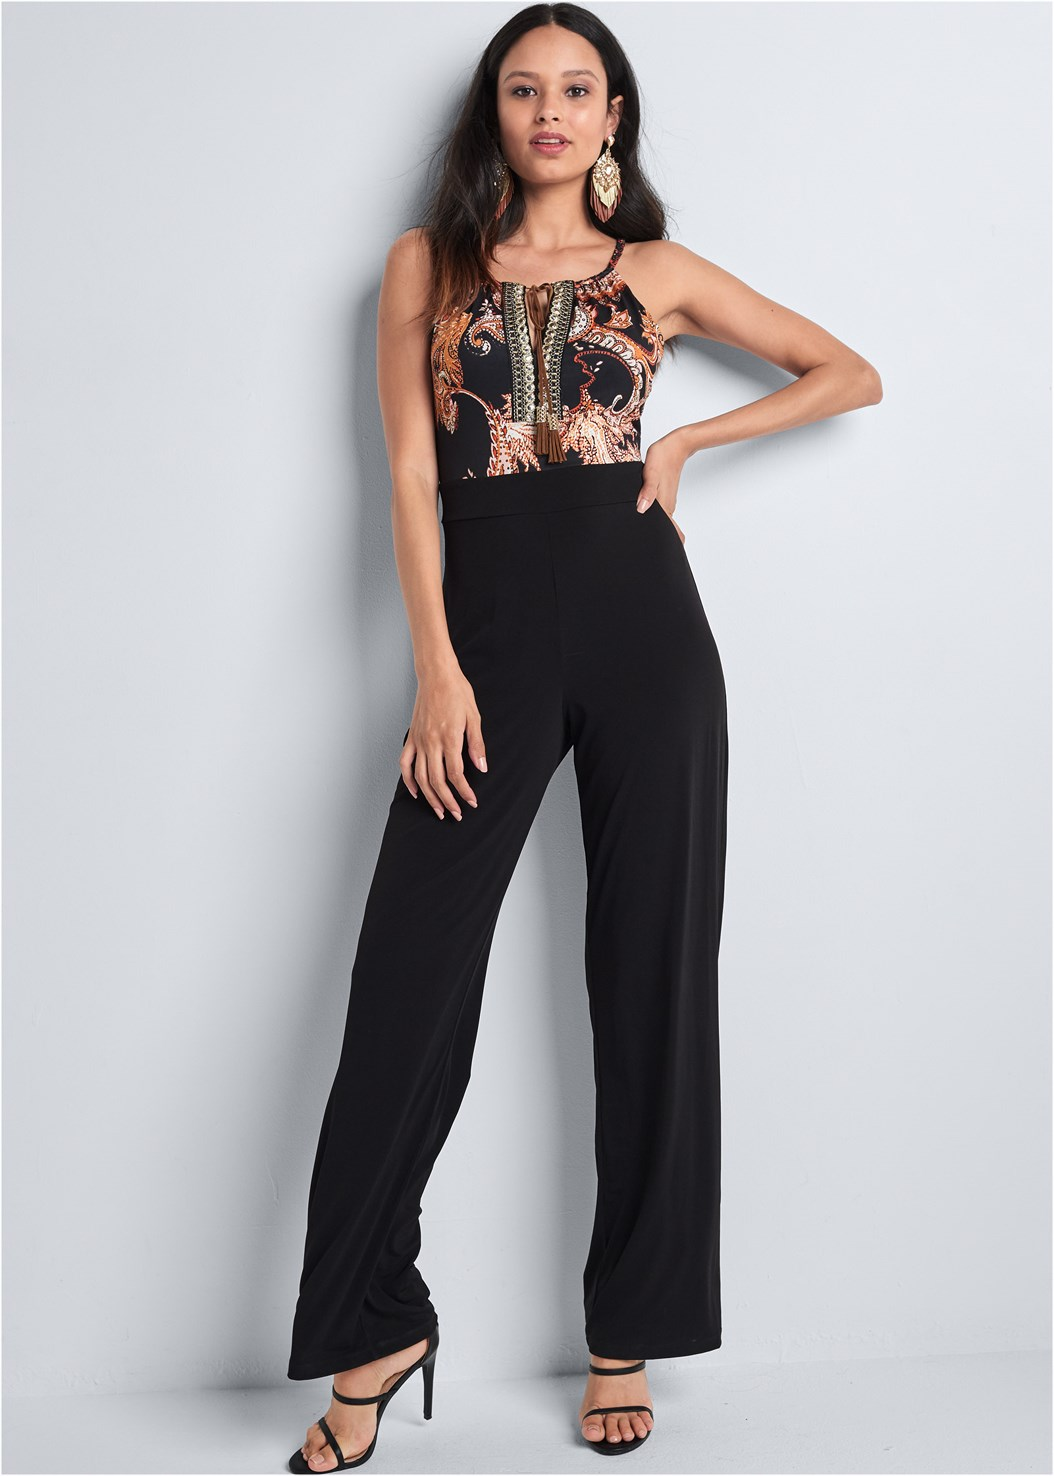 Paisley Printed Jumpsuit,Kissable Convertible Bra,High Heel Strappy Sandals,Embellished Fringe Earrings